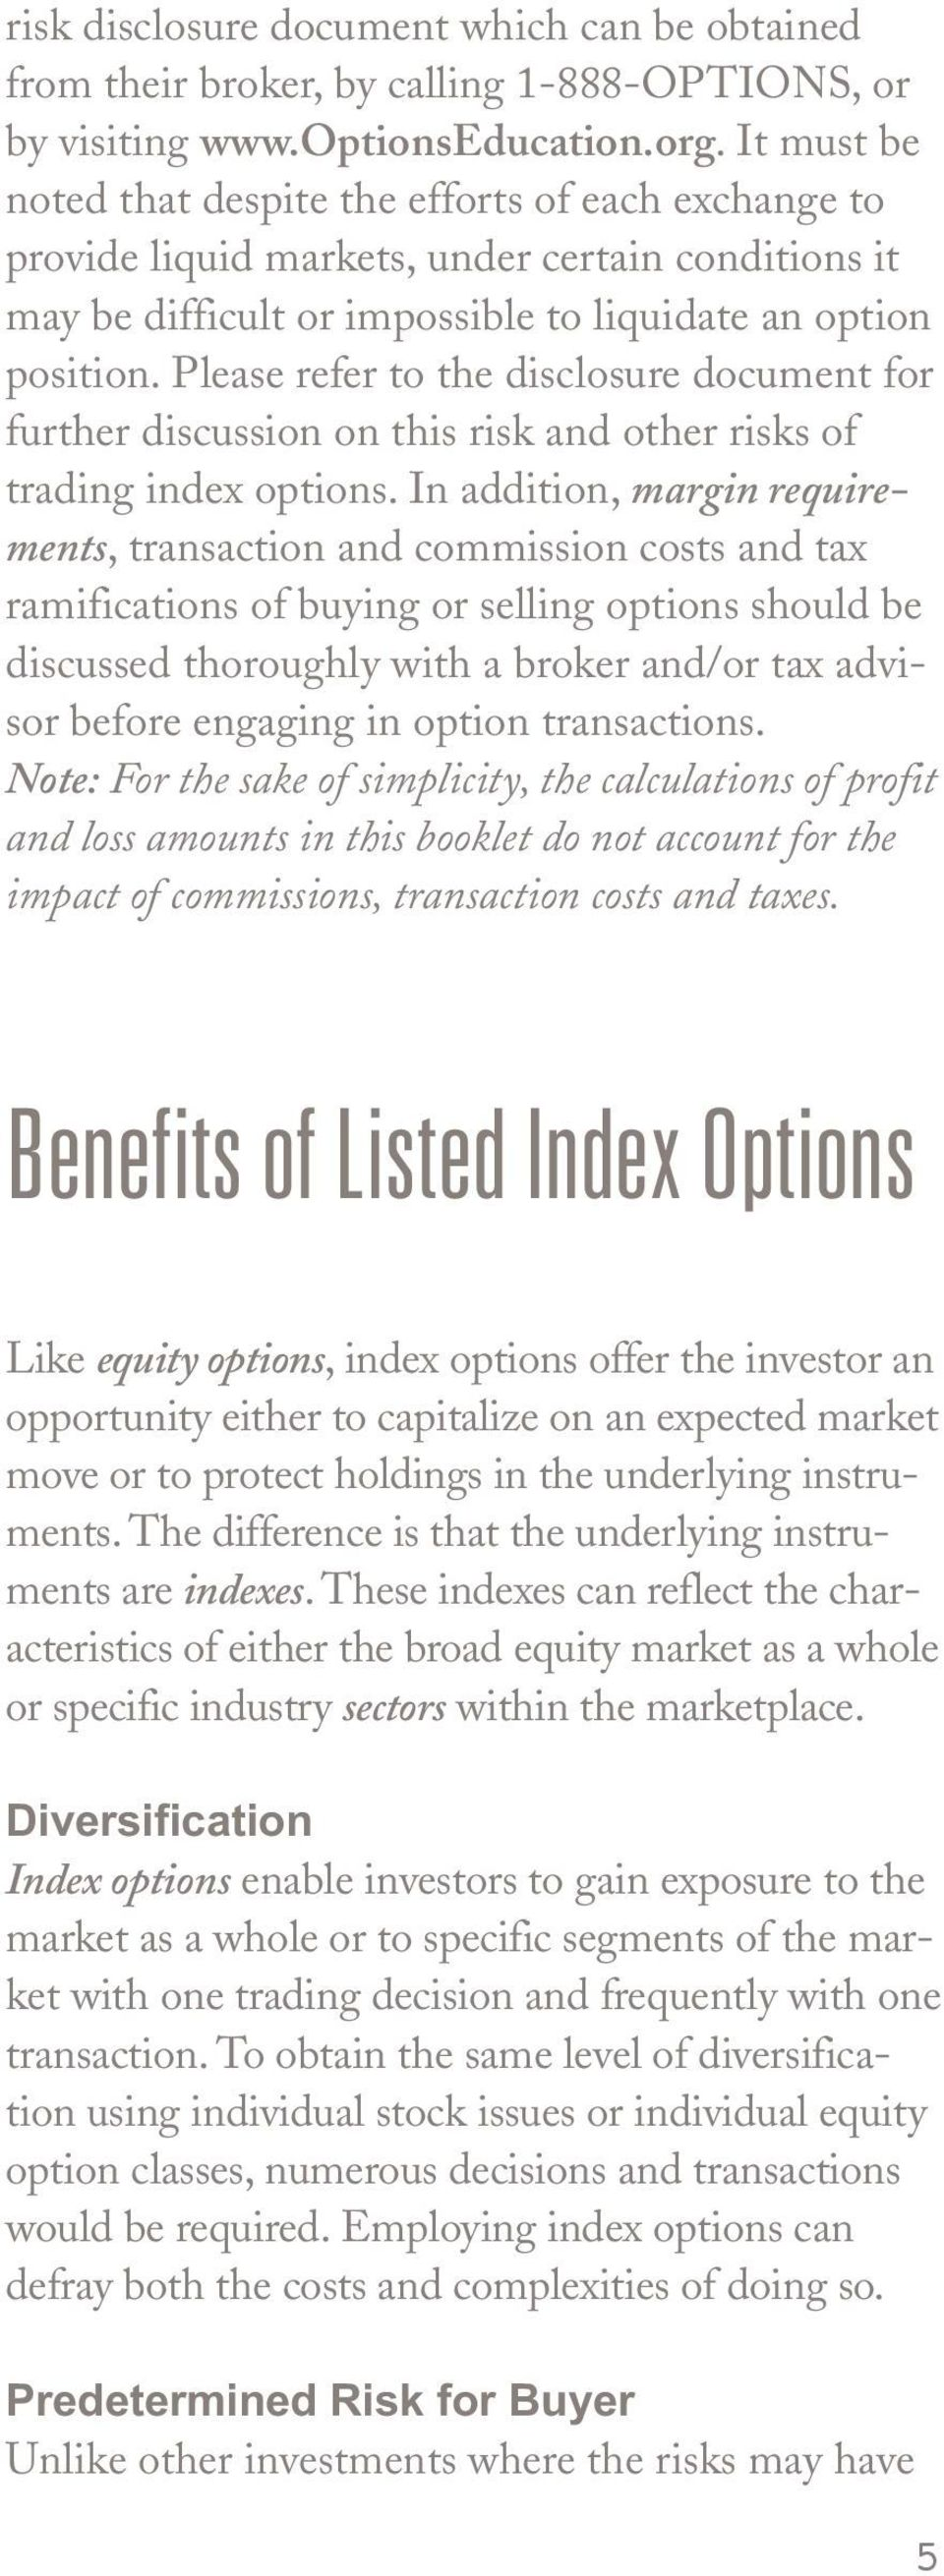 Please refer to the disclosure document for further discussion on this risk and other risks of trading index options.